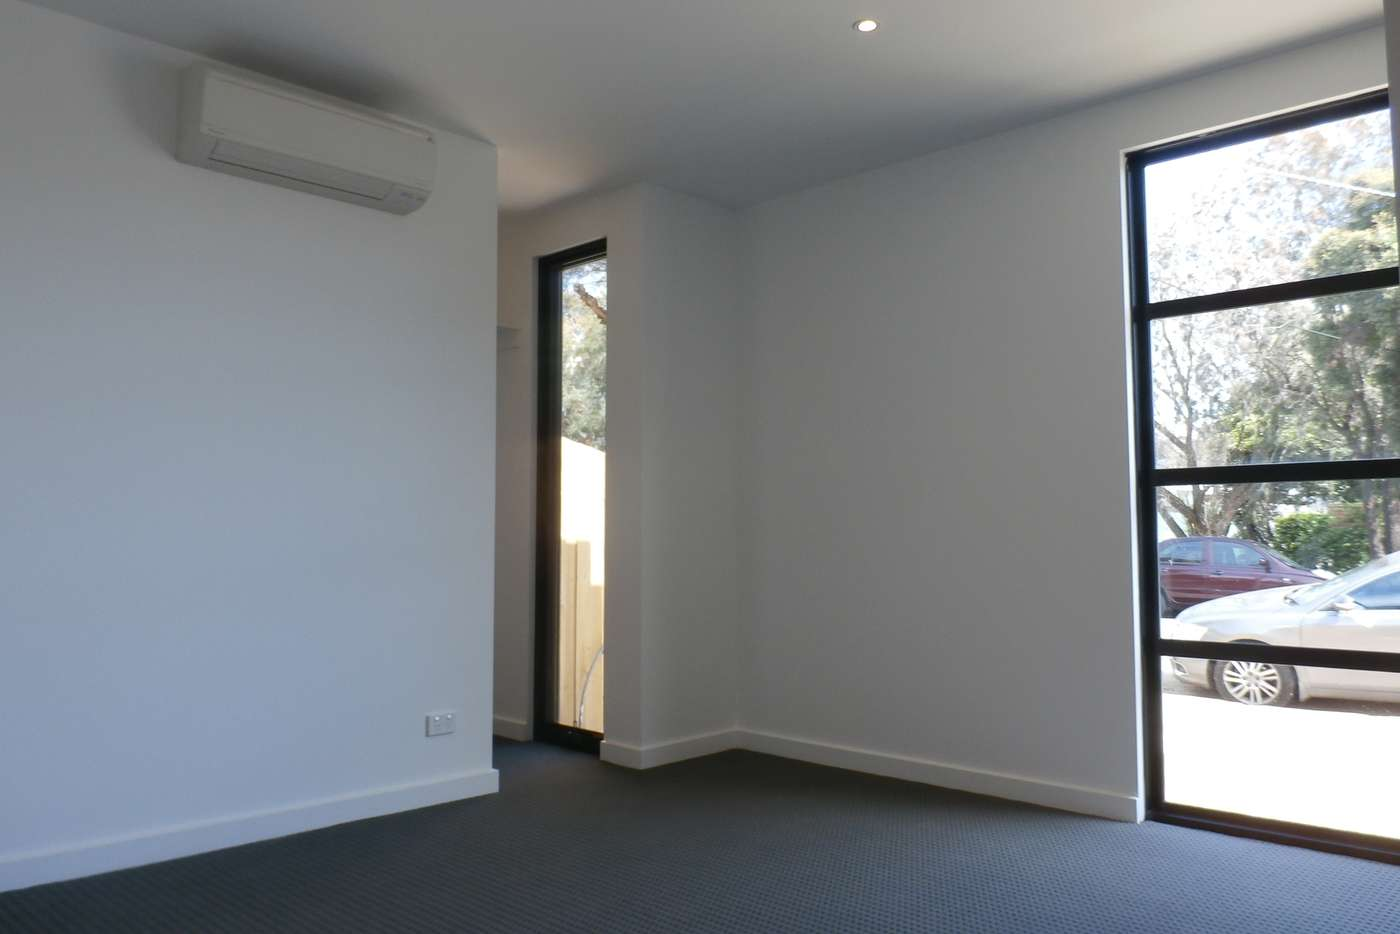 Seventh view of Homely townhouse listing, 4 Sturrock Street, Brunswick East VIC 3057